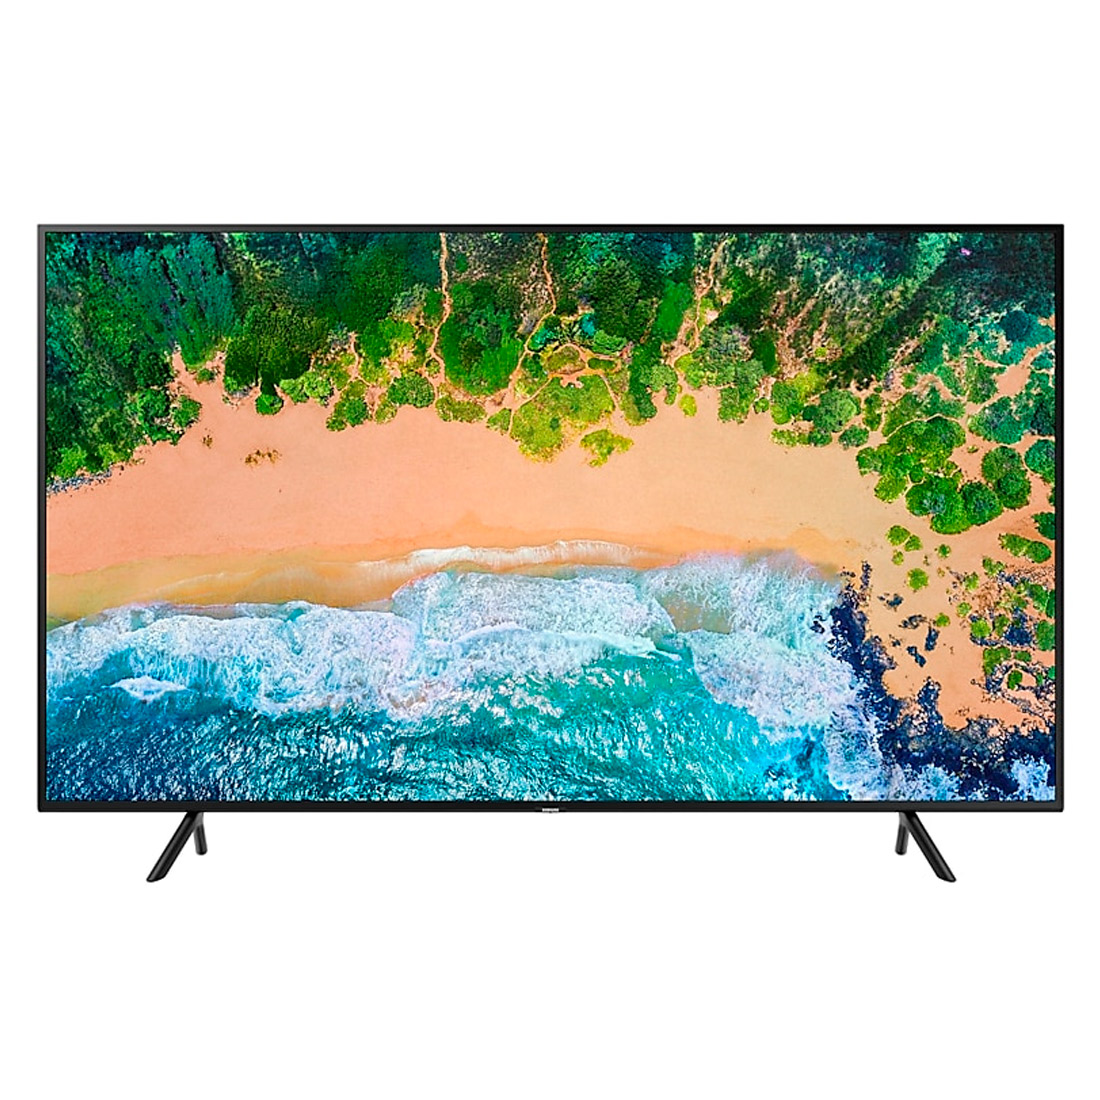 "Smart TV SAMSUNG UN65NU7100PCZE 65"" 4k UHD"